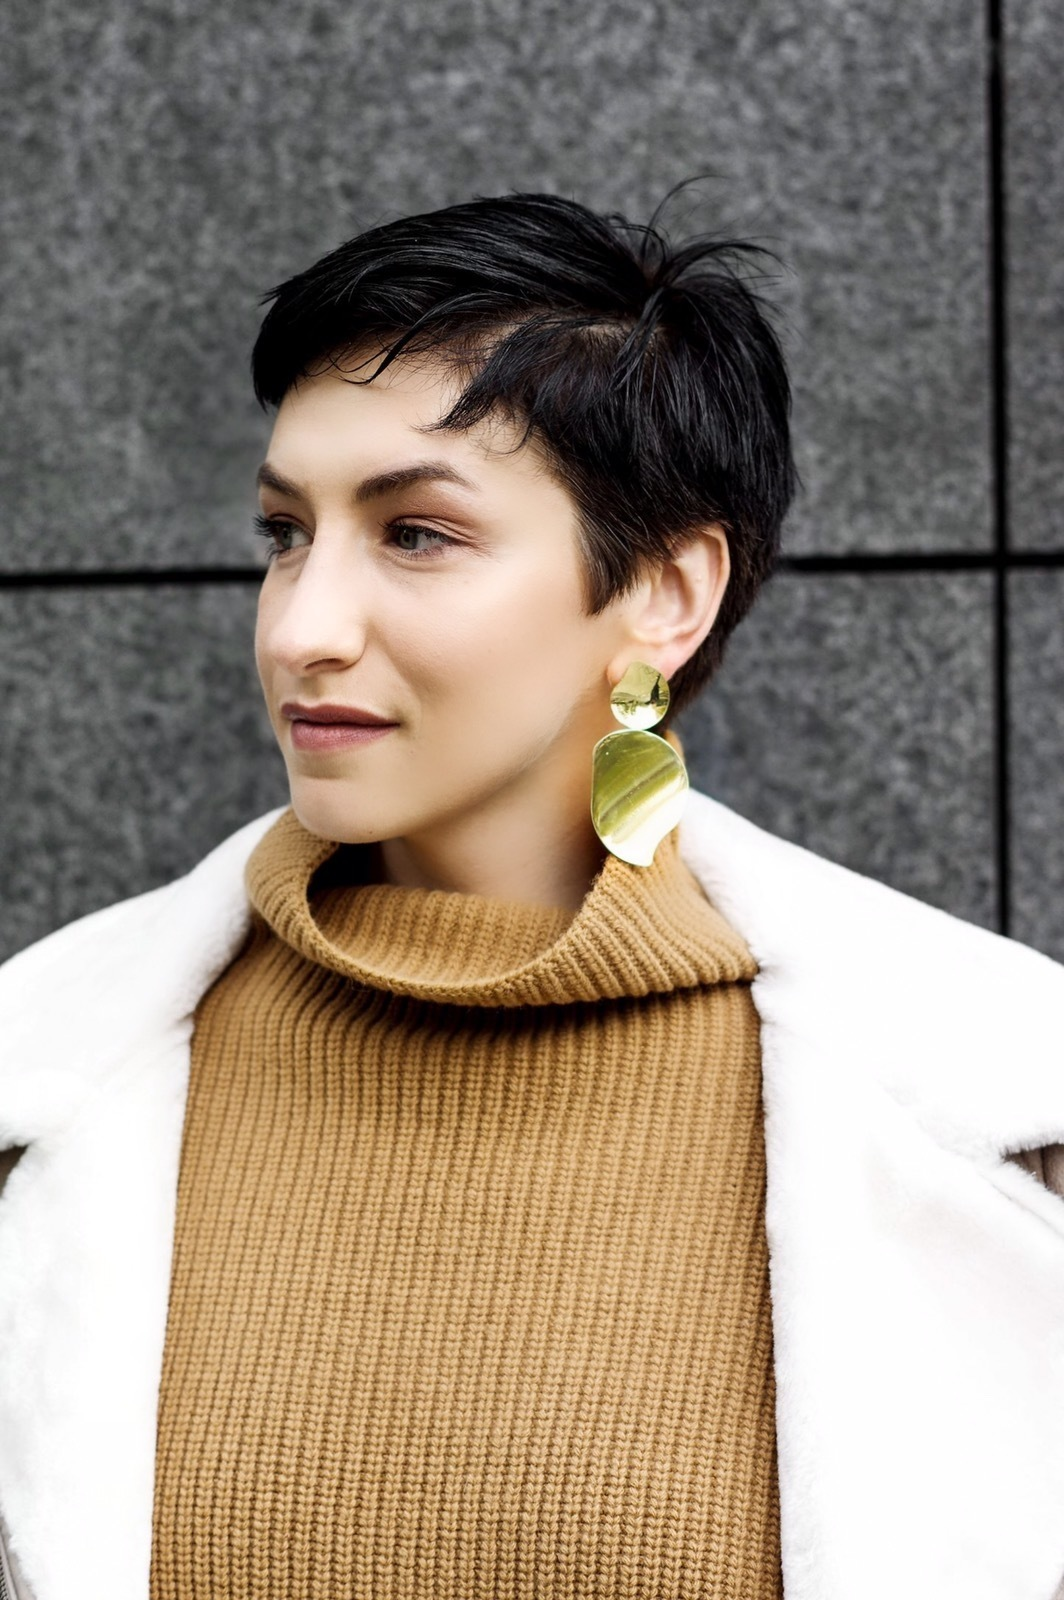 16 Essential statement earrings for bussiness women